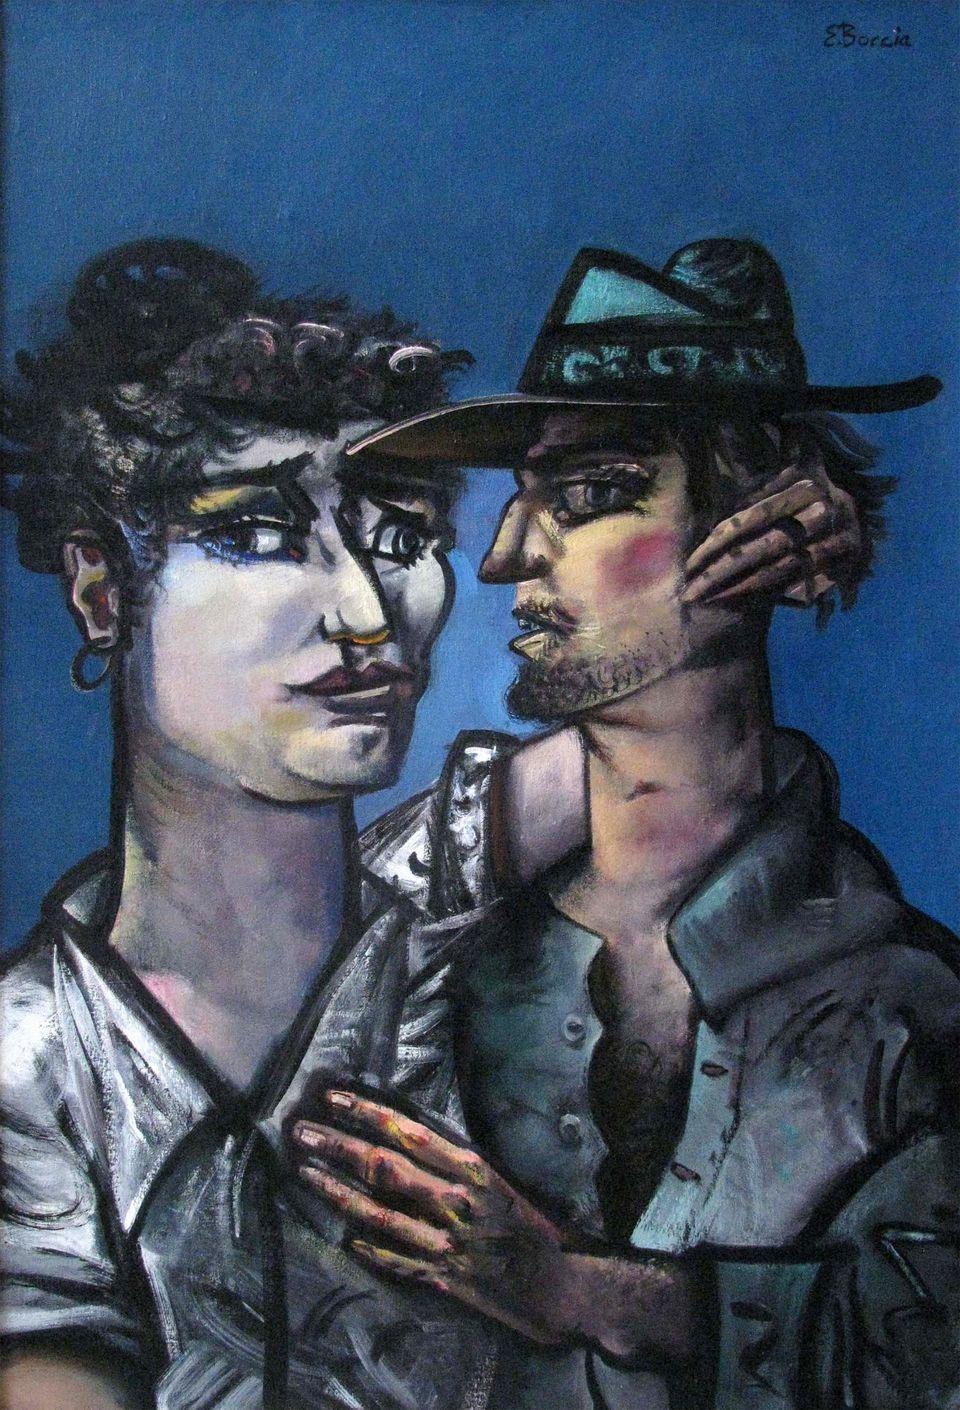 Edward Boccia, The Possibility of Love, 1985, 36 inches by 24 inches, Private Collection.